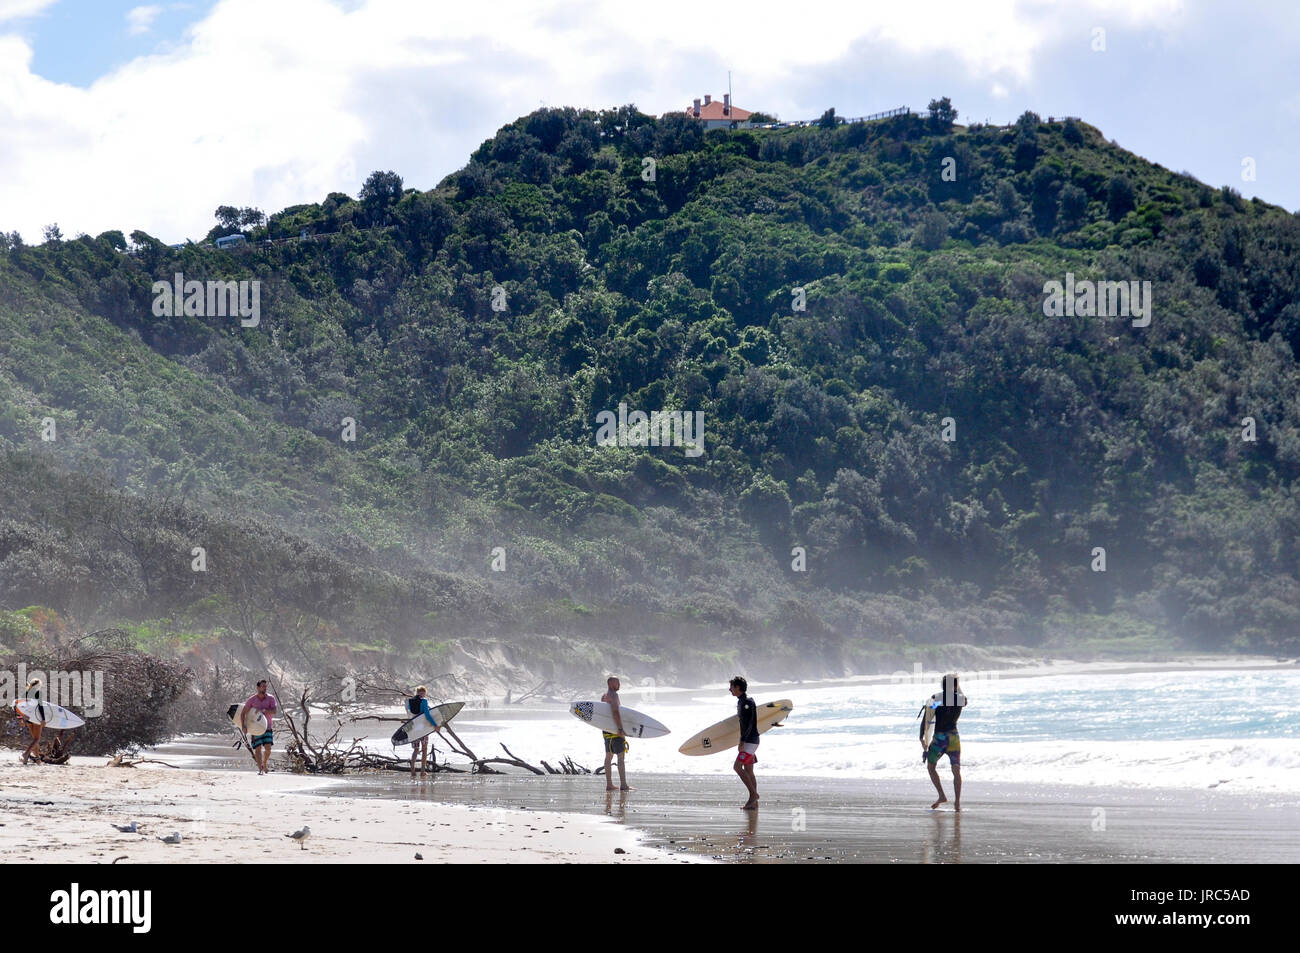 surfers-standing-on-the-beach-holding-their-surfboards-at-tallow-beach-JRC5AD.jpg